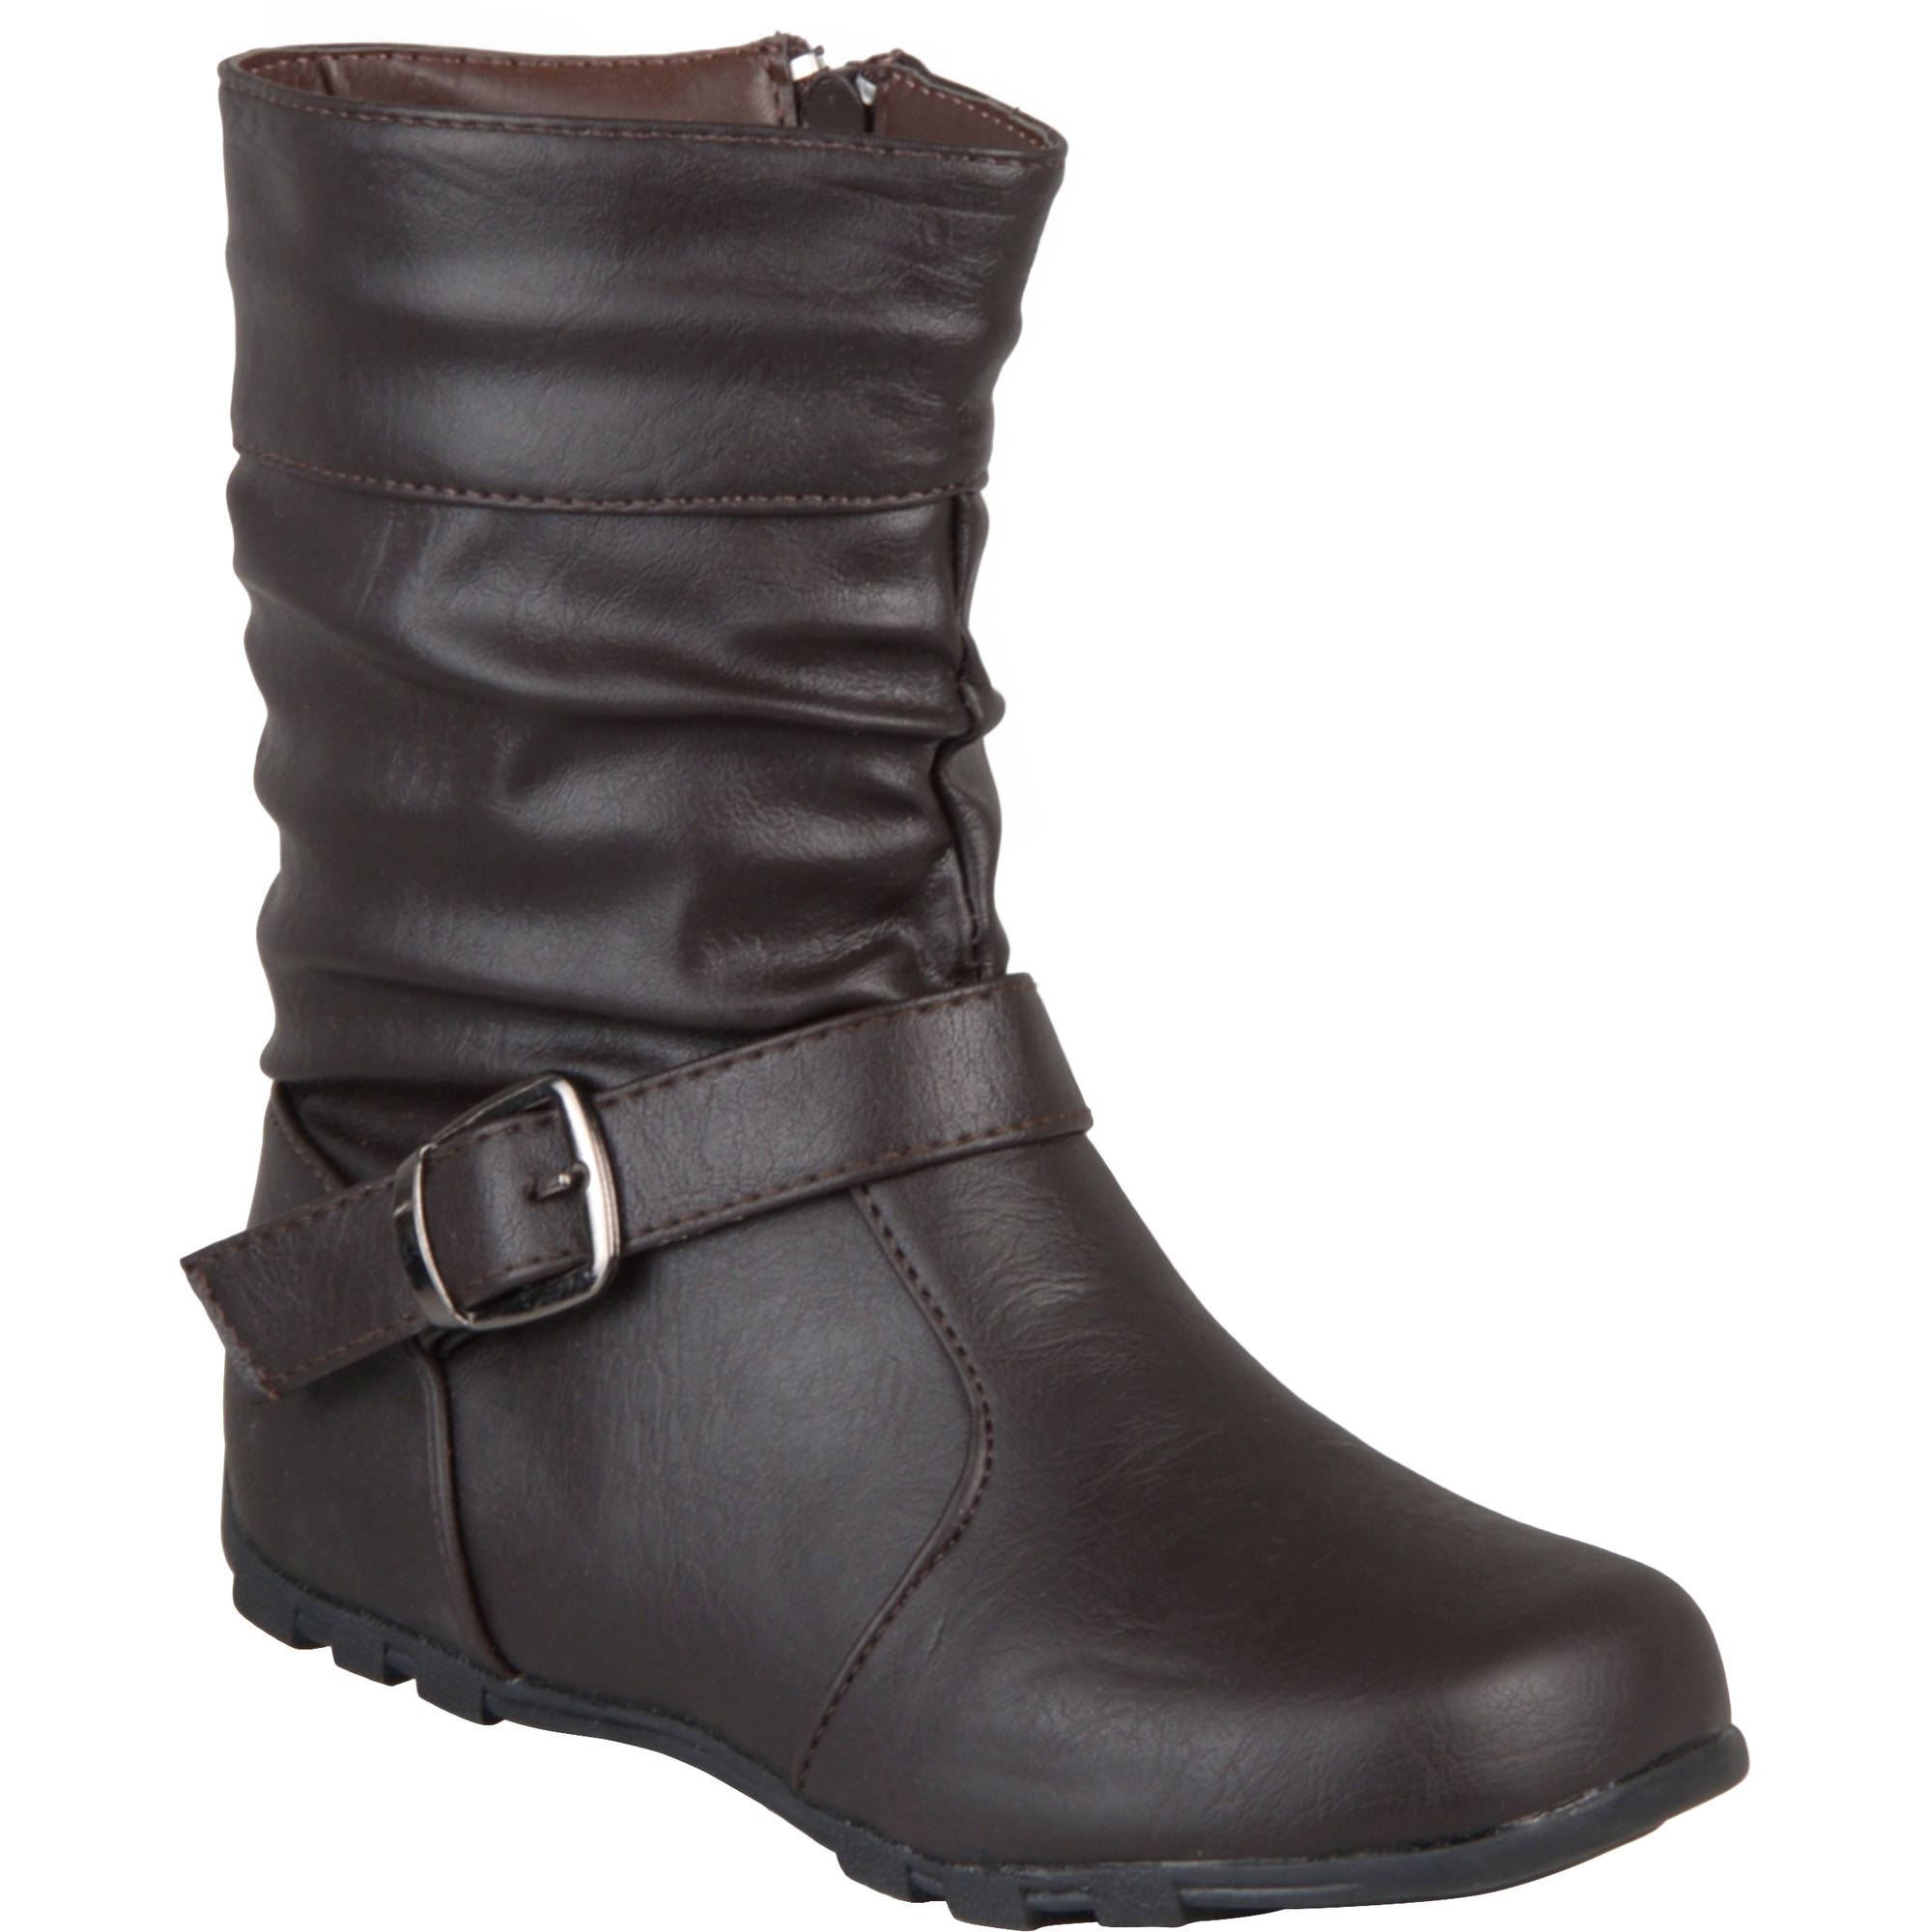 Brinley Co Girls' Slouchy Accent Mid-calf Boots